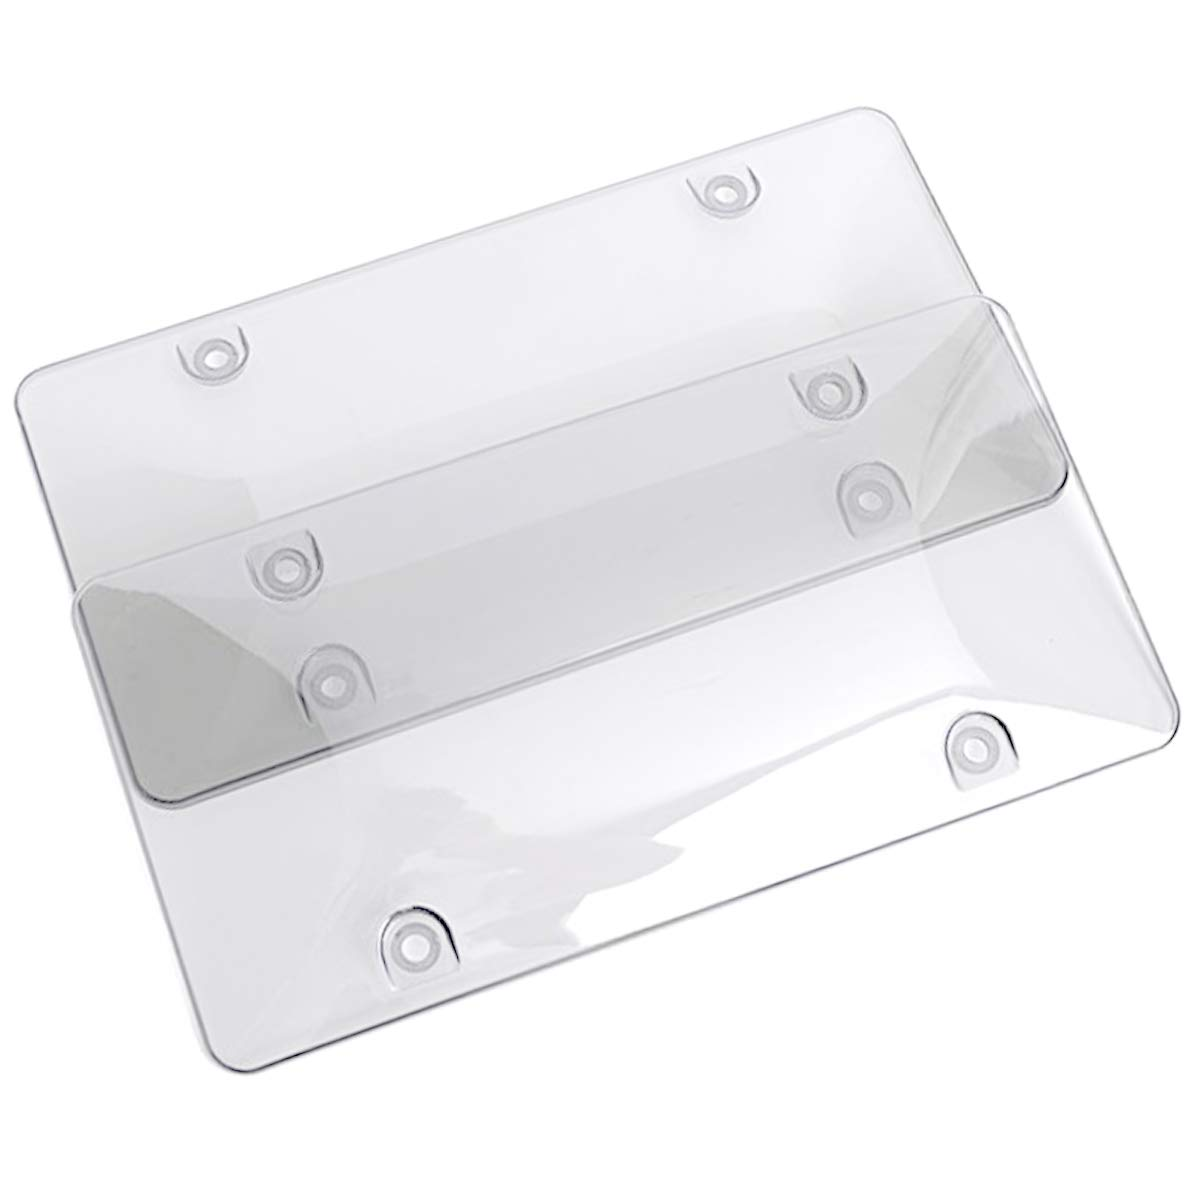 WildAuto License Plate Cover, 2Pack Car Licenses Frame Shields with Screws Caps(Smoked Bubble) CA-WA-Slicense CoverT-2pcs